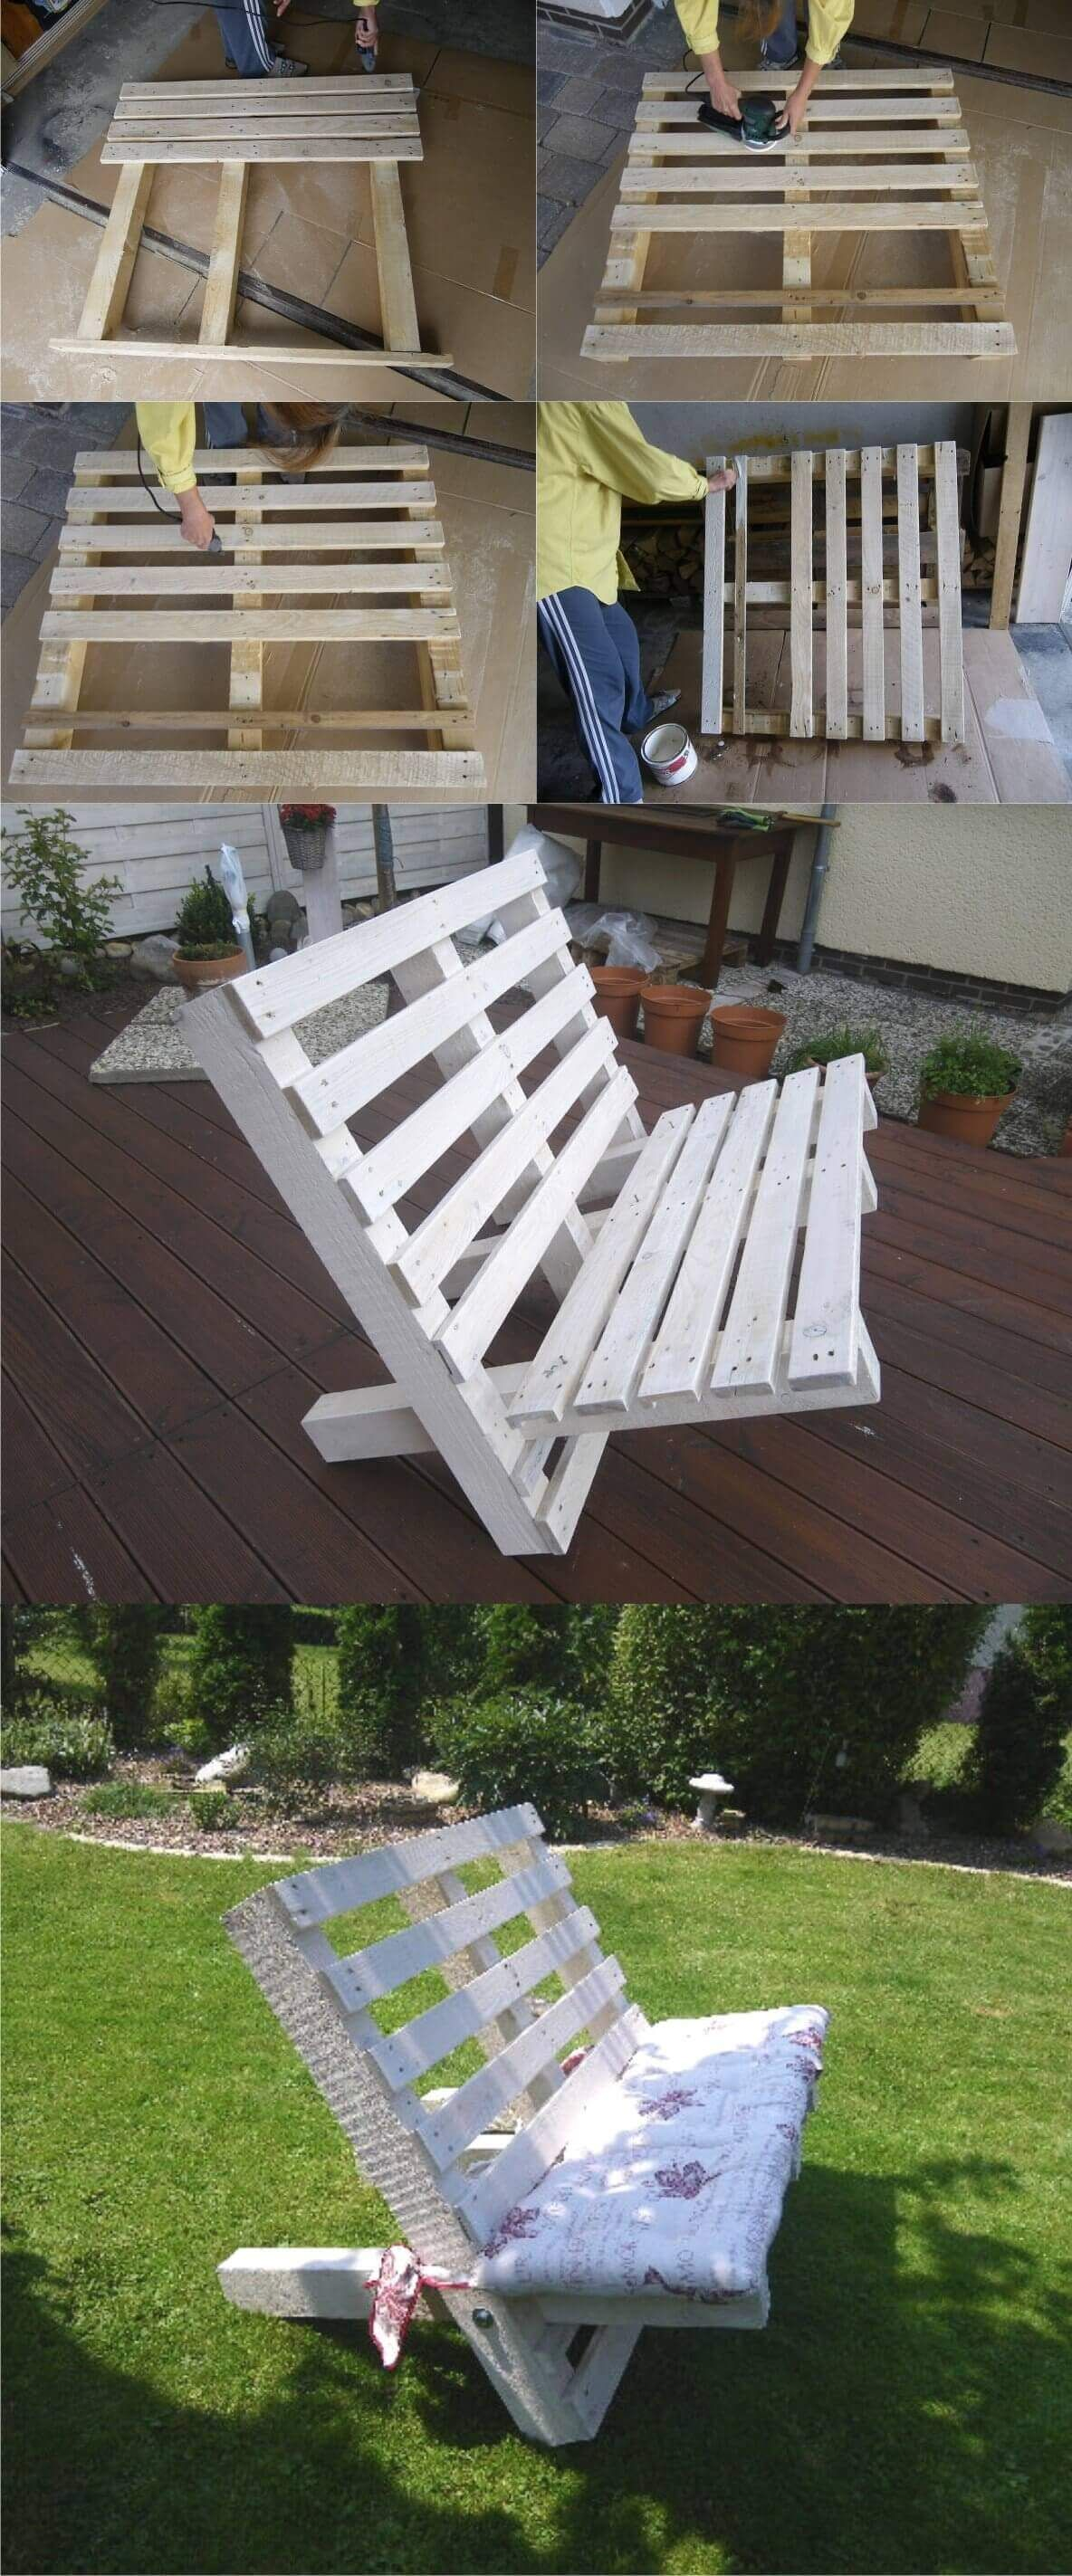 Poltrone Da Giardino Fai Da Te.29 Diy Outdoor Furniture Projects To Beautify Your Outdoor Space